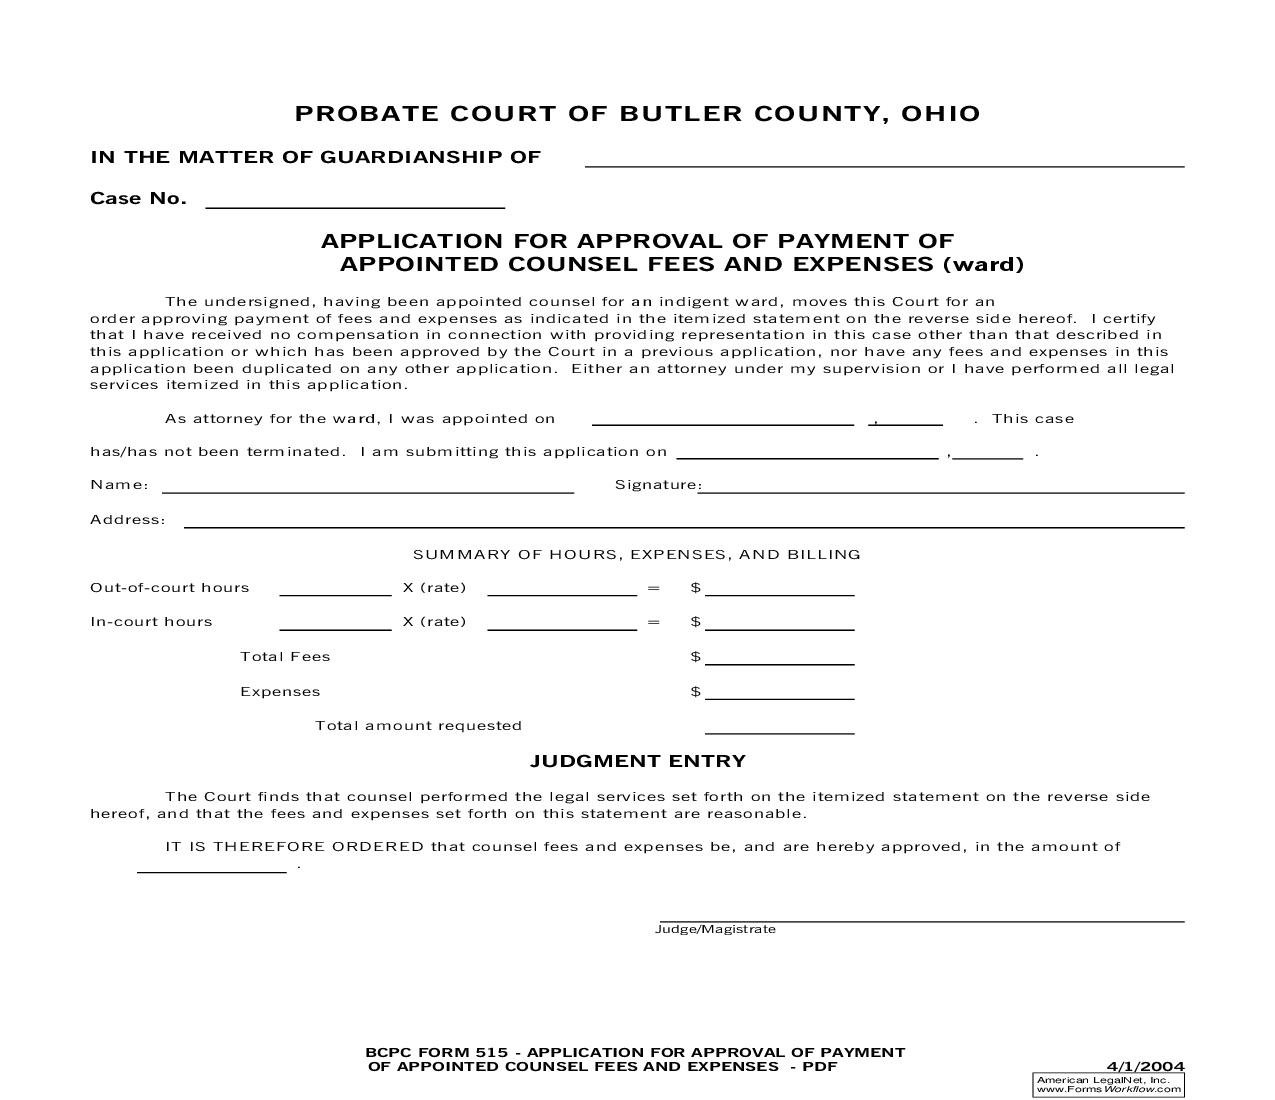 Application For Approval Of Payment Of Appointed Counsel Fees And Expenses {515}   Pdf Fpdf Doc Docx   Ohio